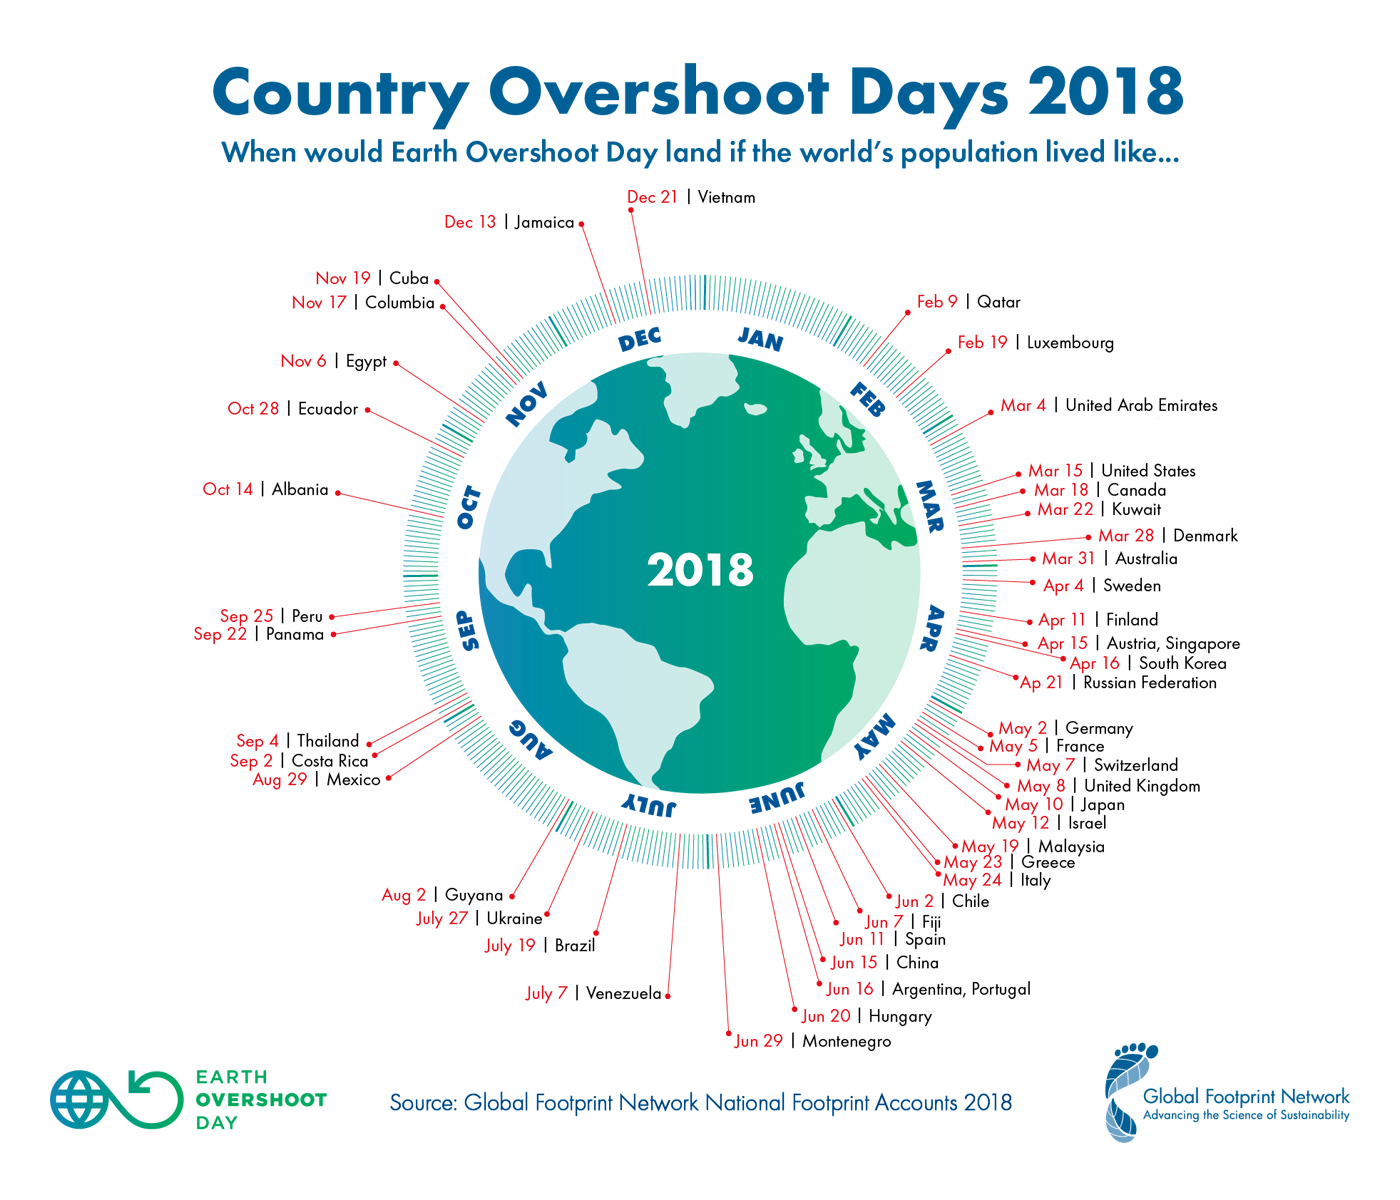 country overshoot days 2018 h2s